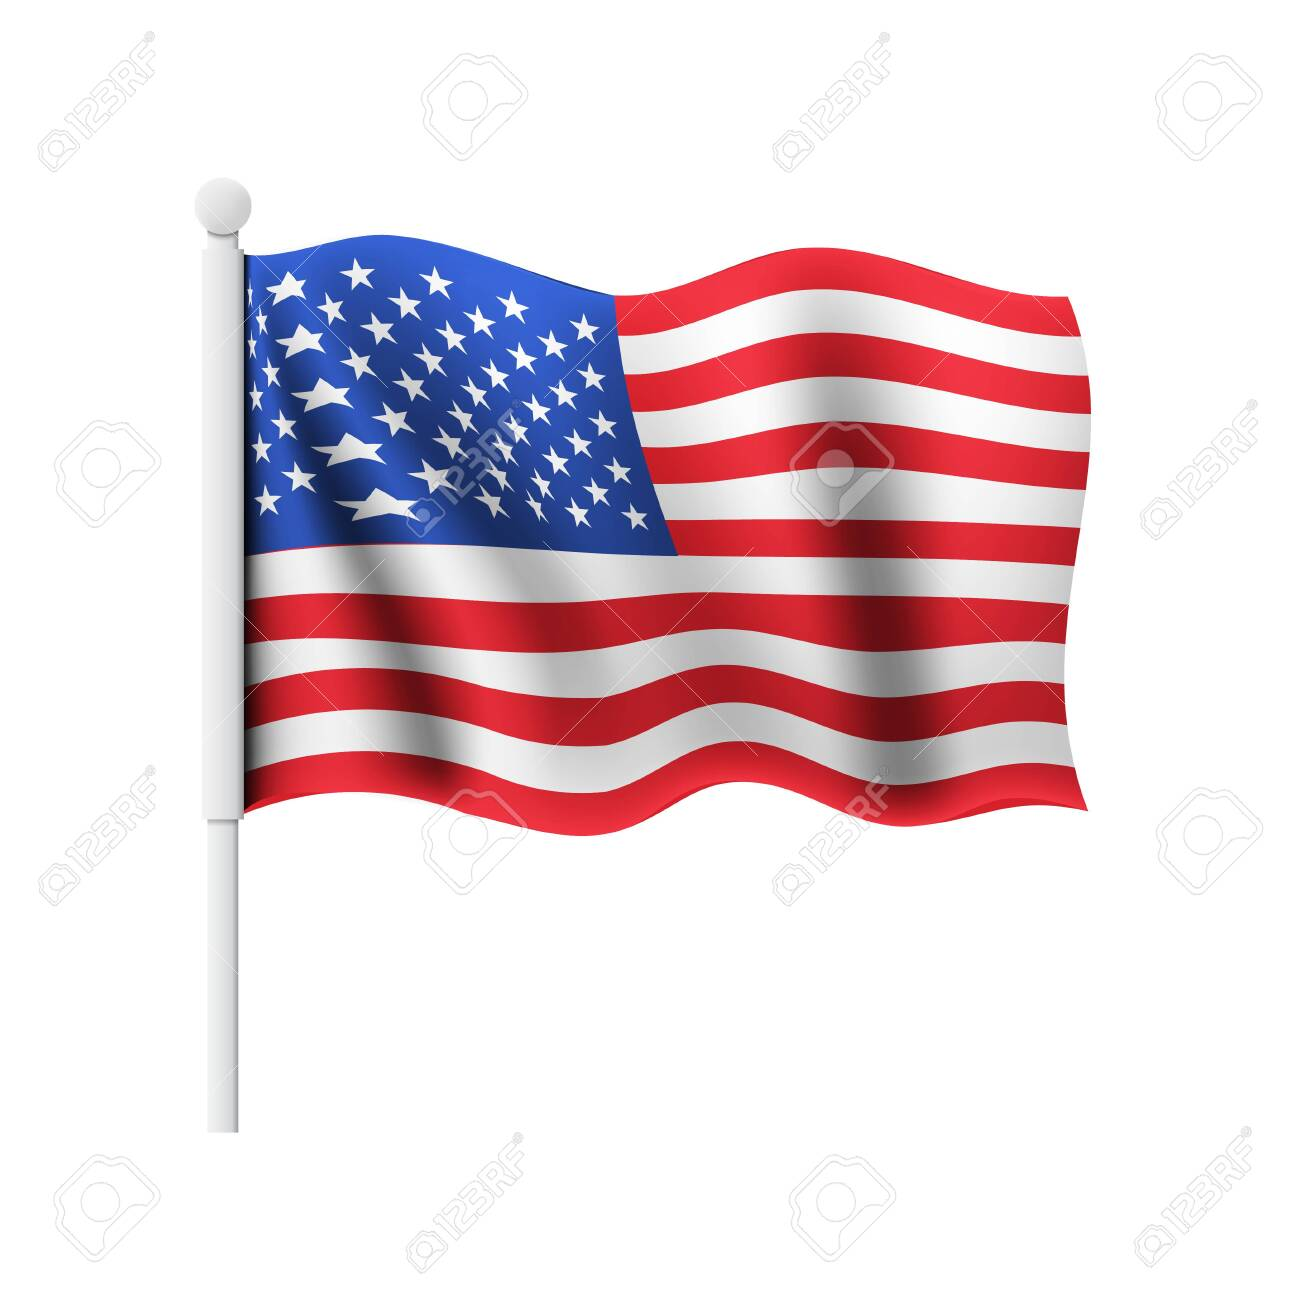 Waving flag of the United States of America - 144984376